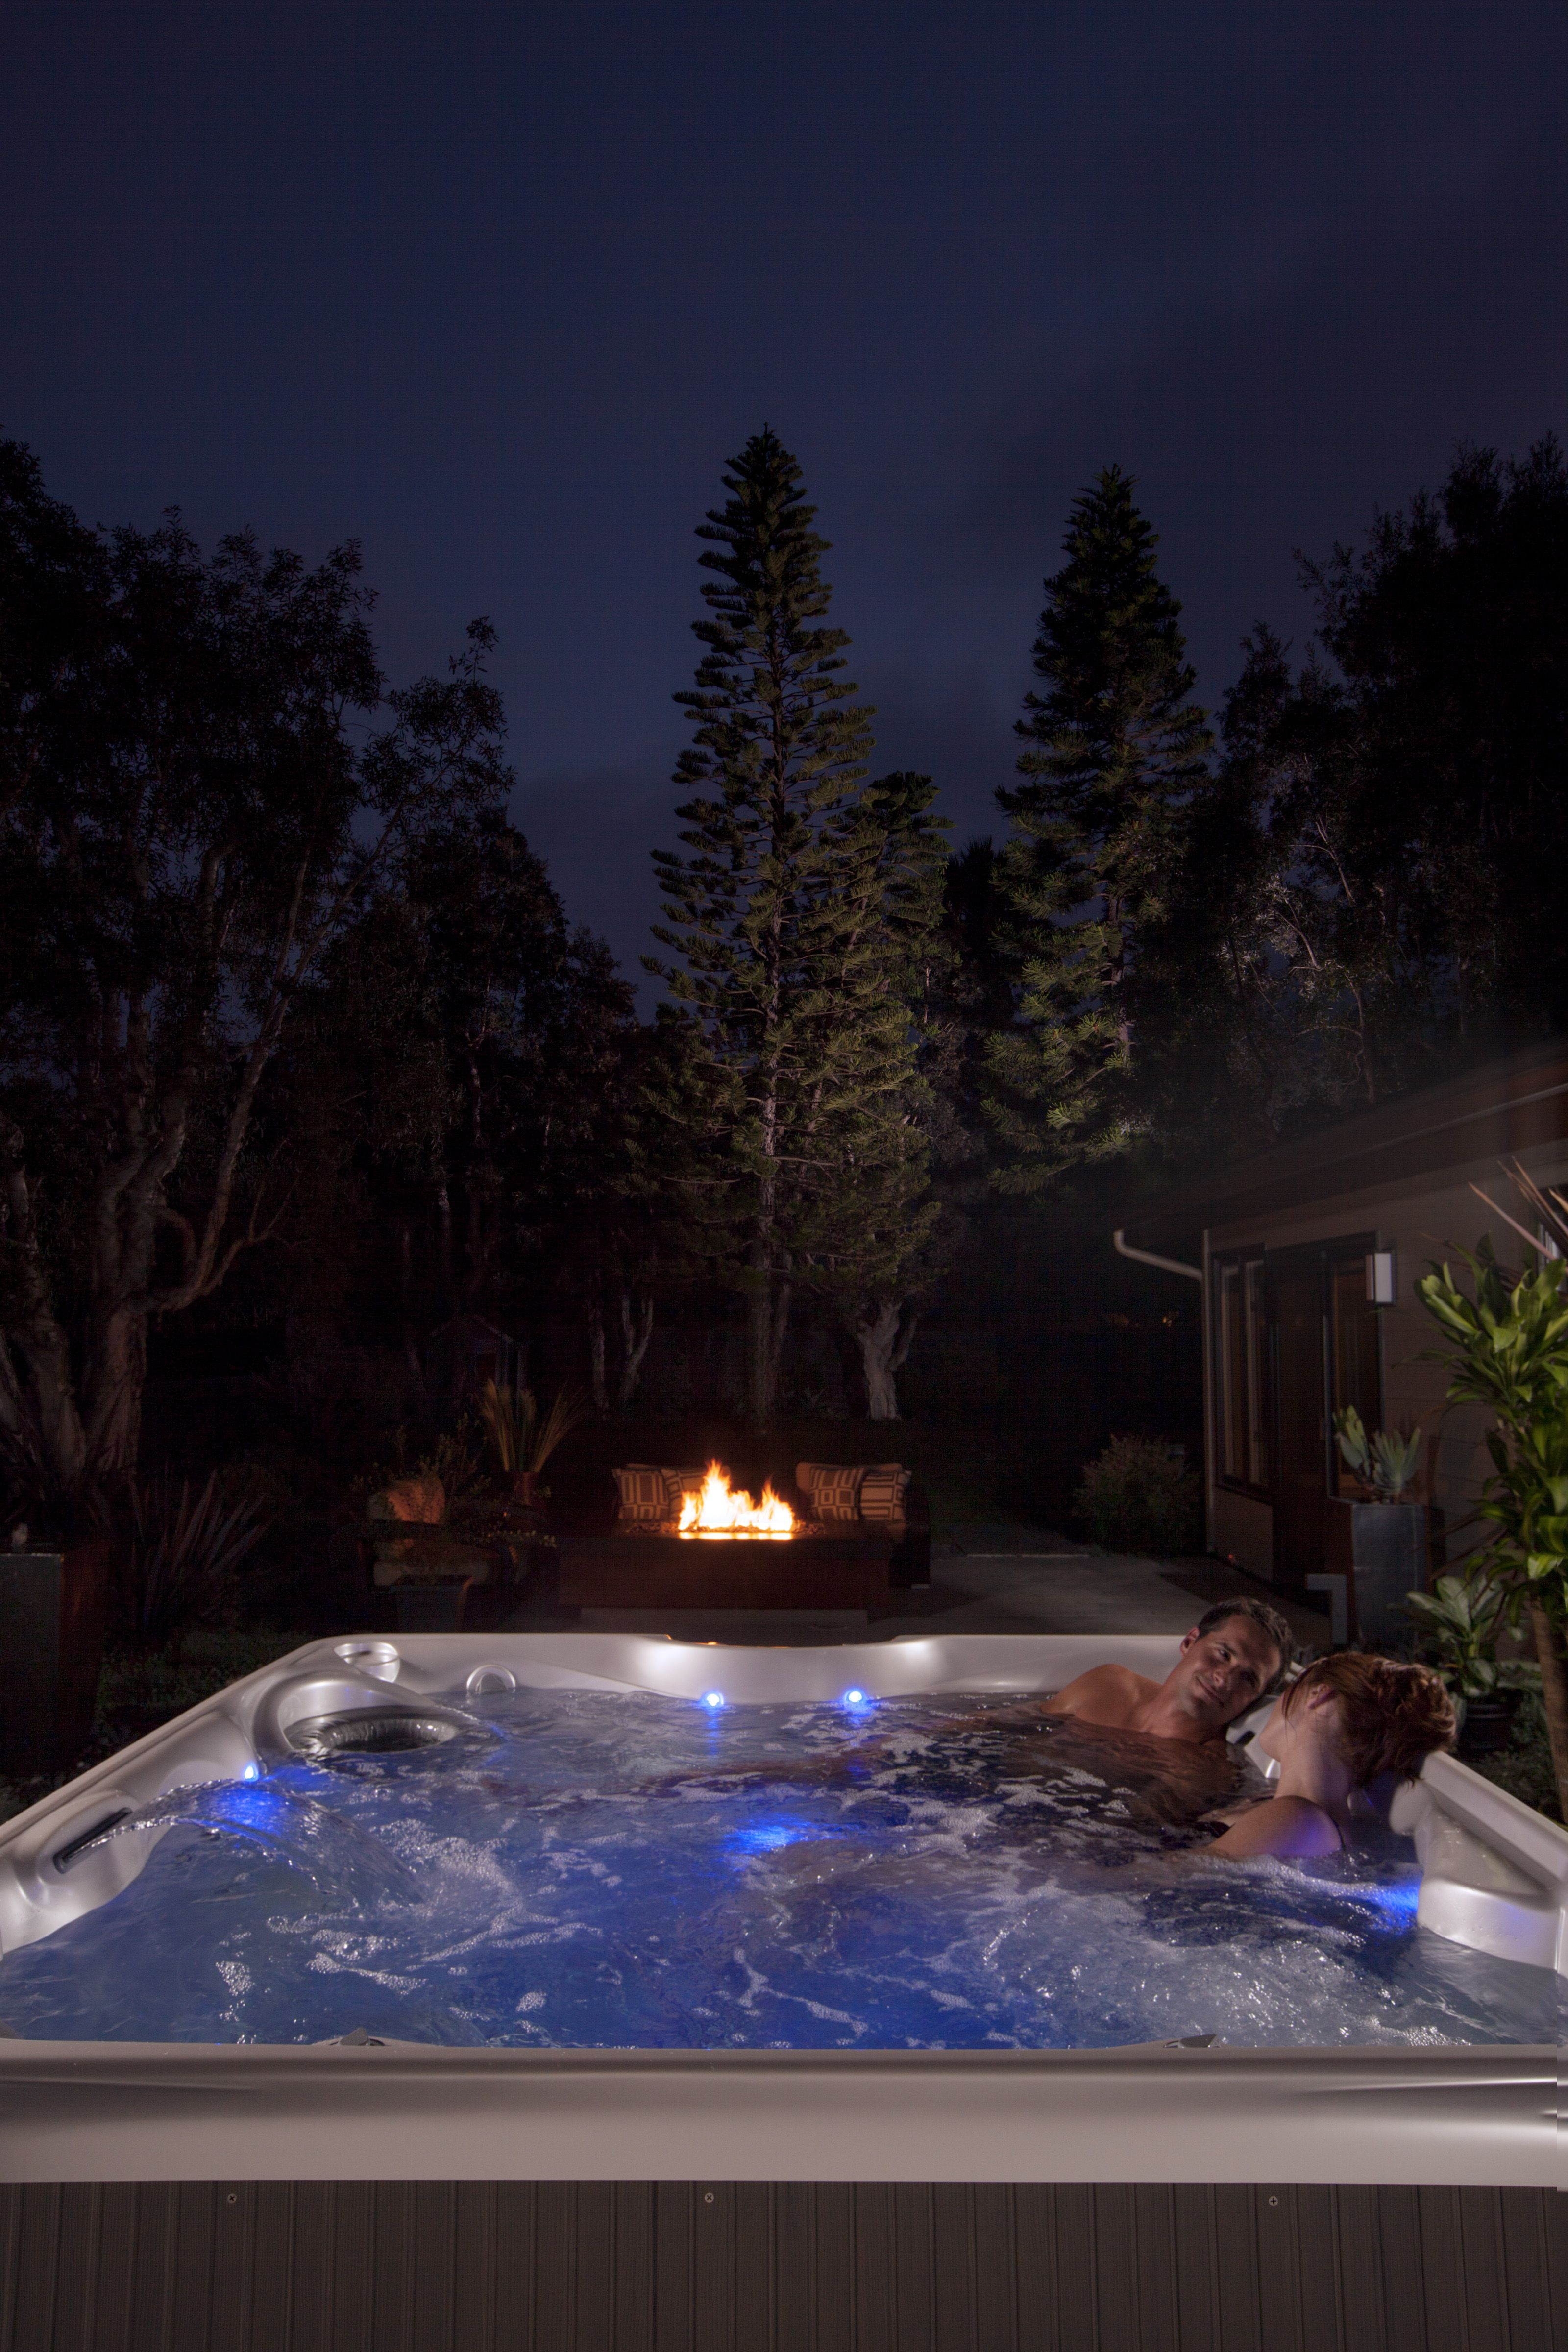 the in springs house a isn pin hot tub add best spot spring at t all seat prices springshot spahot